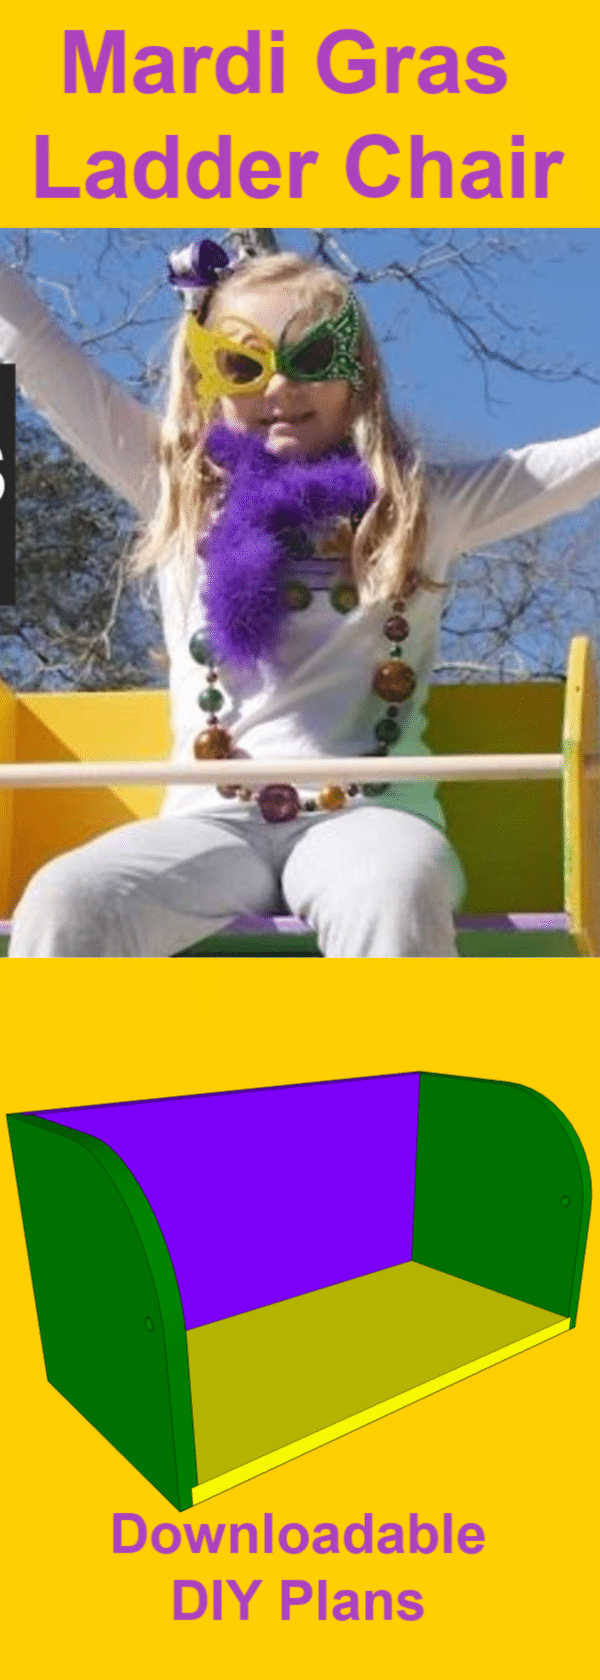 How to Make a Mardi Gras Ladder Chair